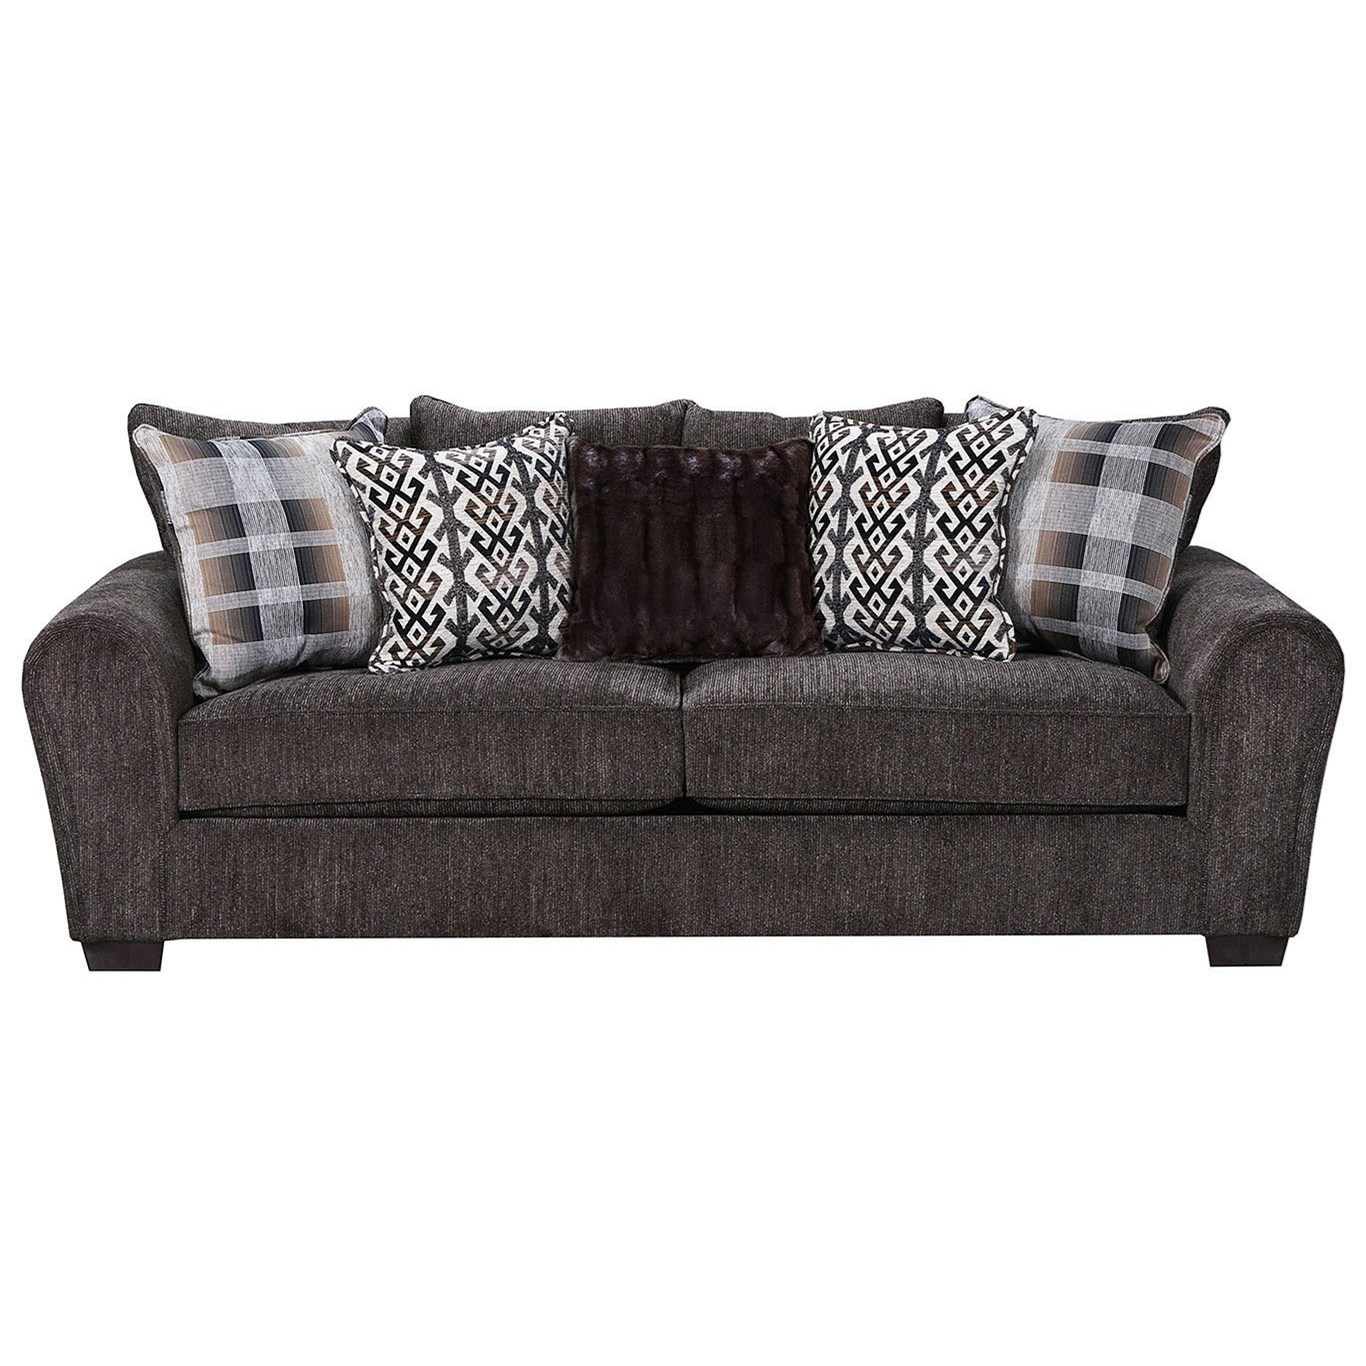 9182BR Sofa by United Furniture Industries at Dream Home Interiors